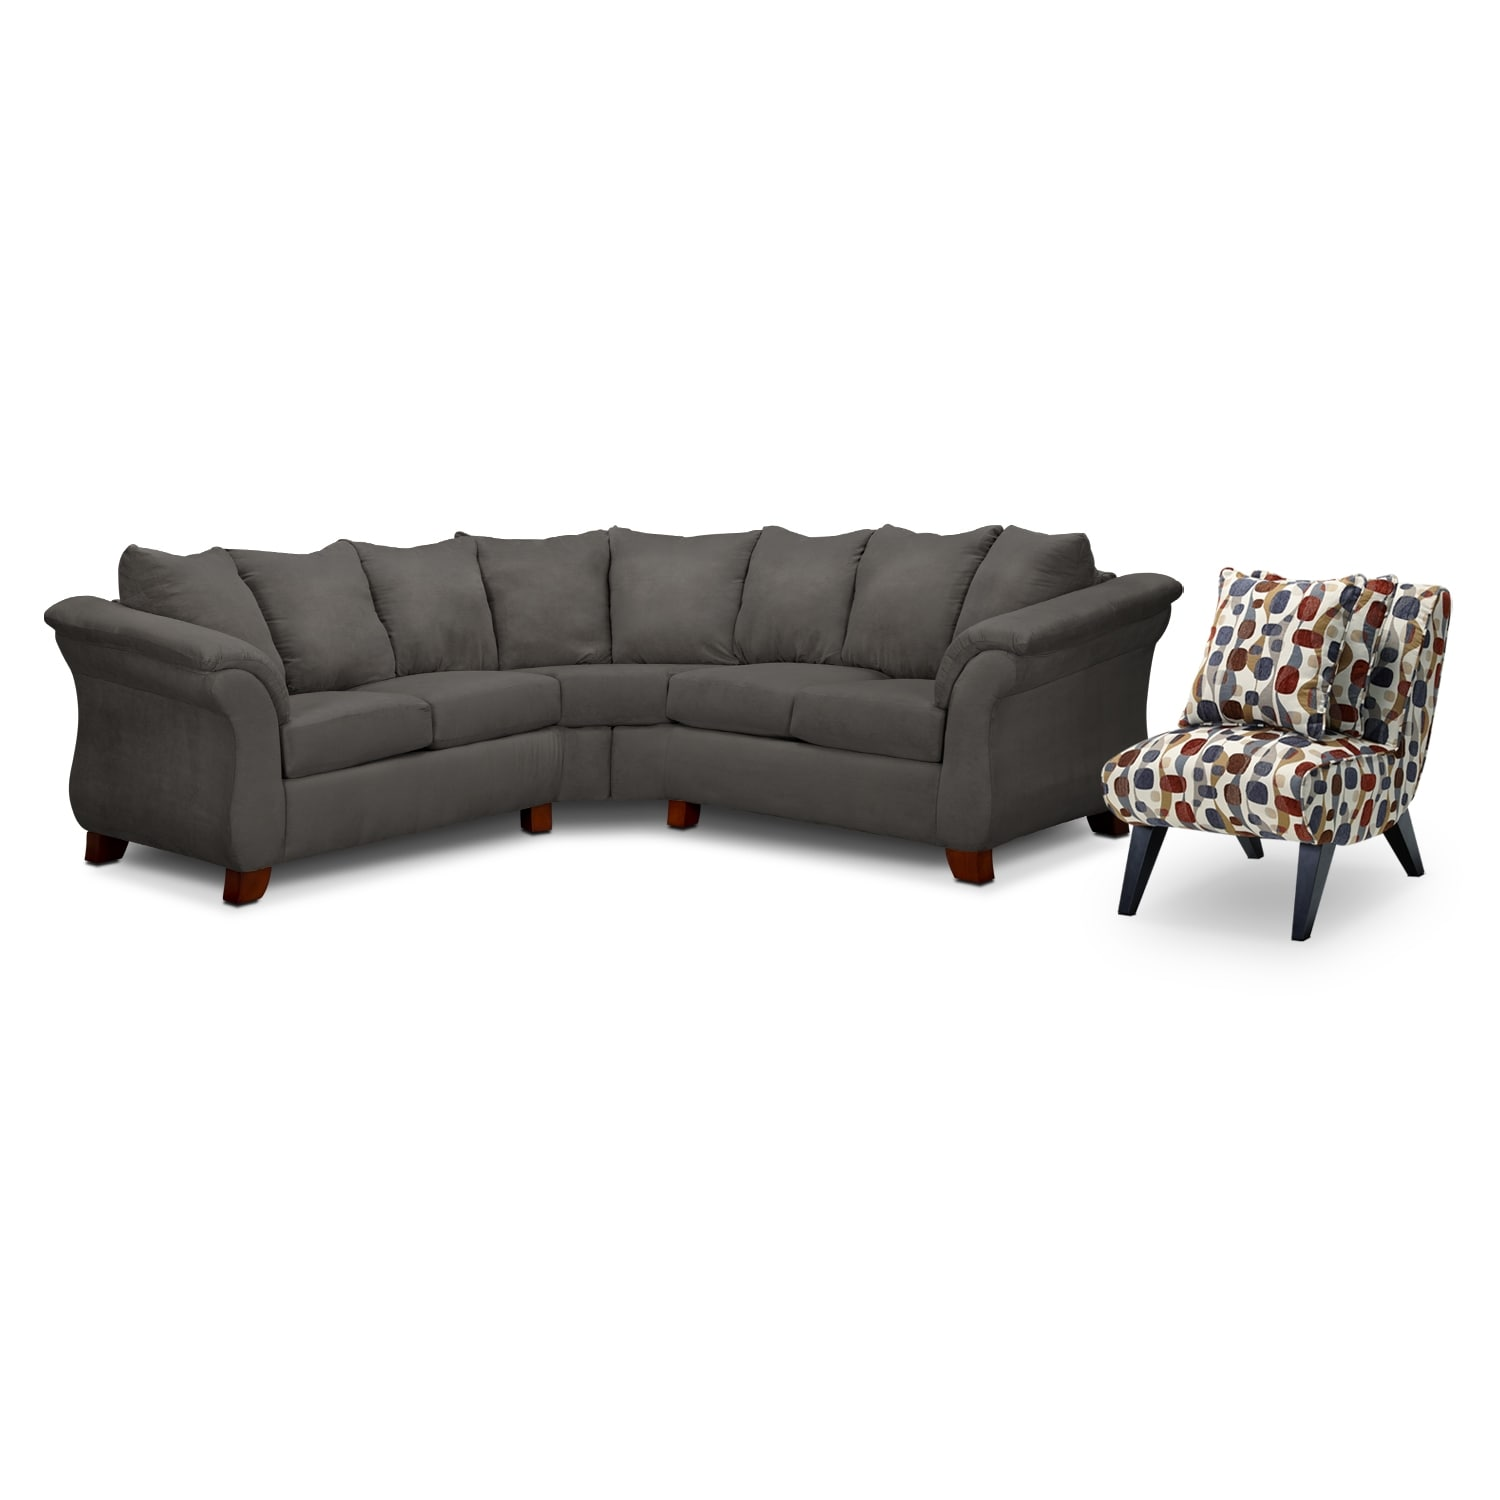 Adrian 2-Piece Sectional and Accent Chair Set - Graphite